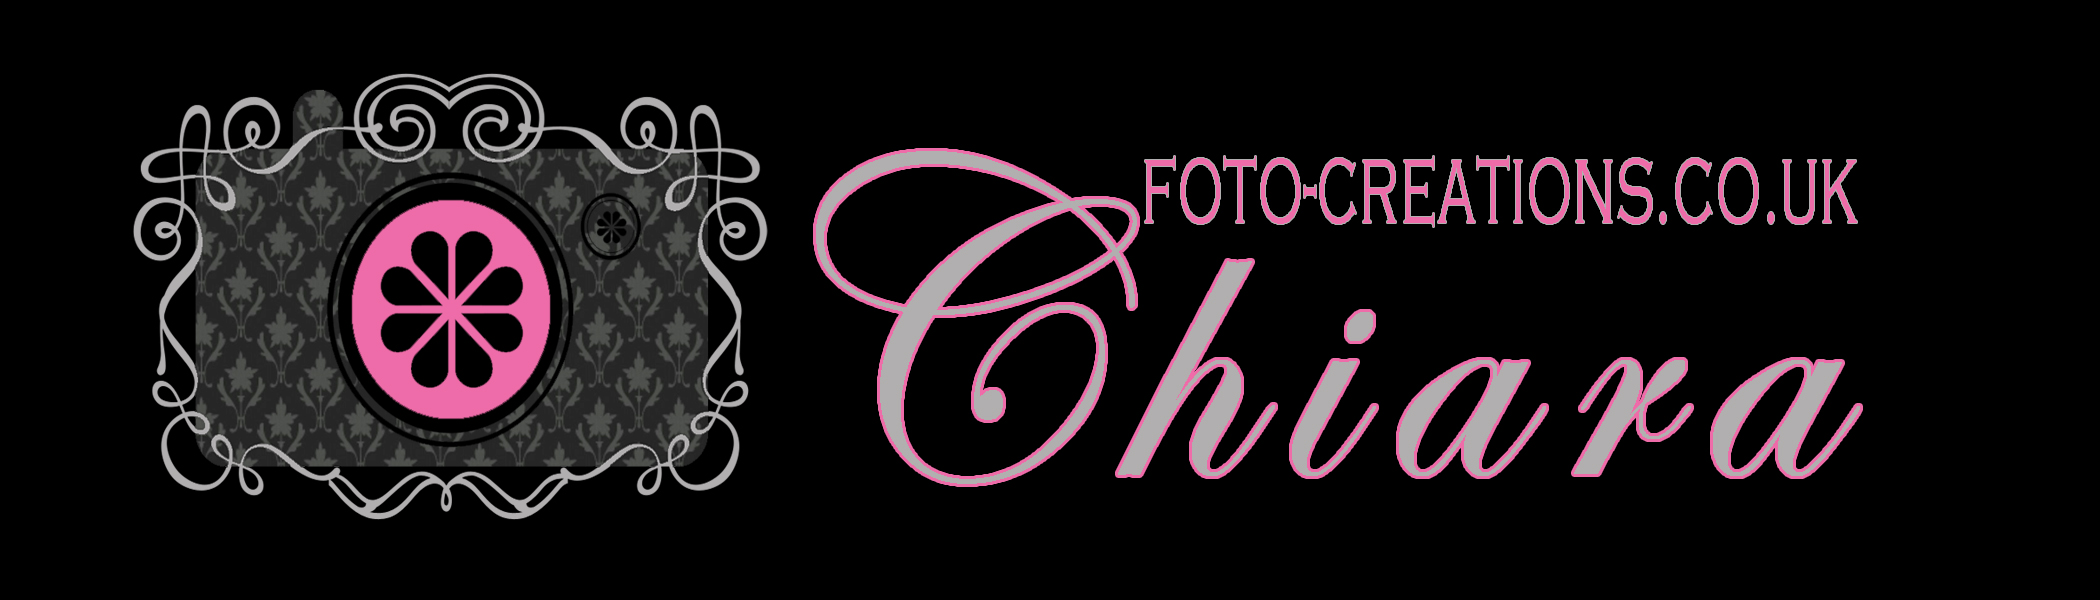 foto-creations by Chiara